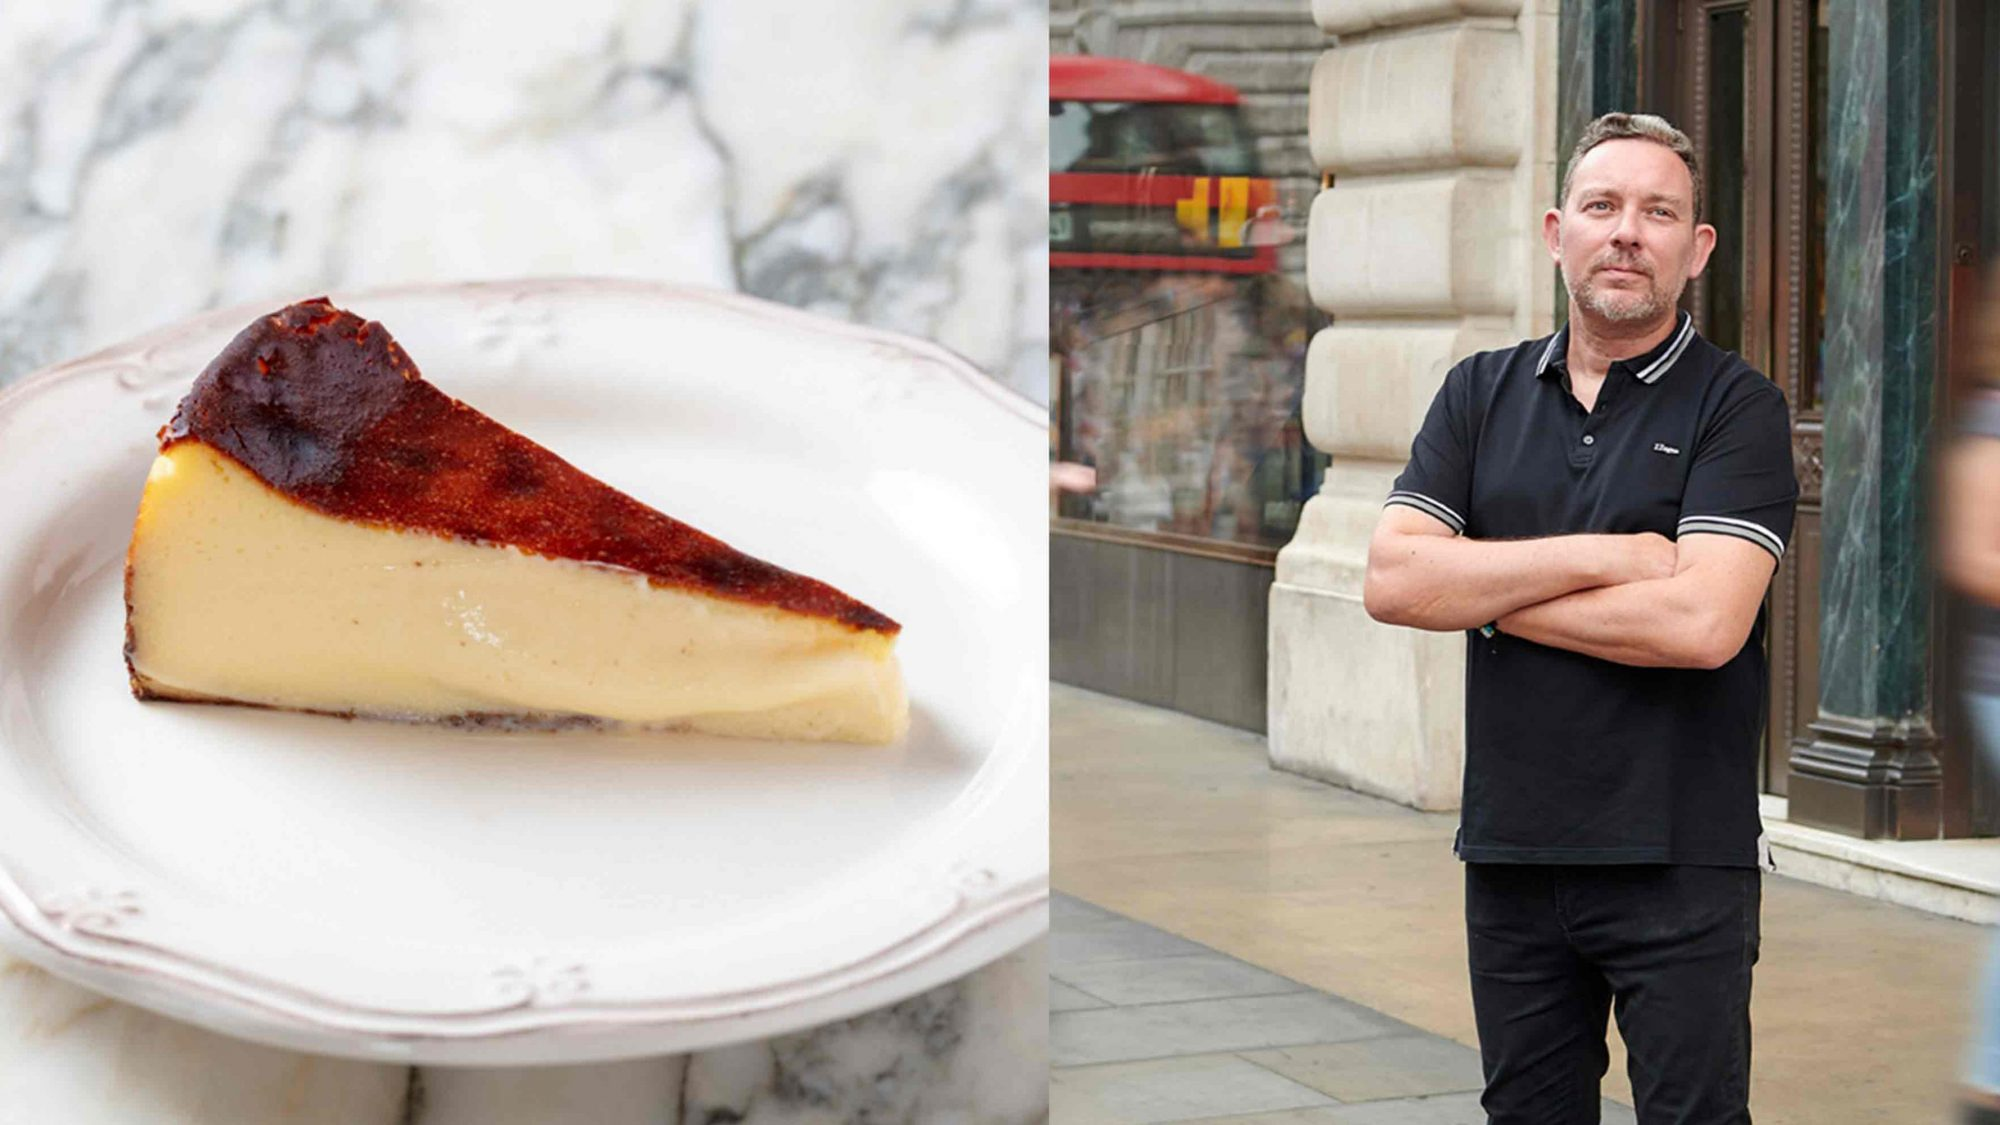 Cakes-and-Bubbles-Albert-Adria-Hotel-Cafe-Royal-London.2.jpg